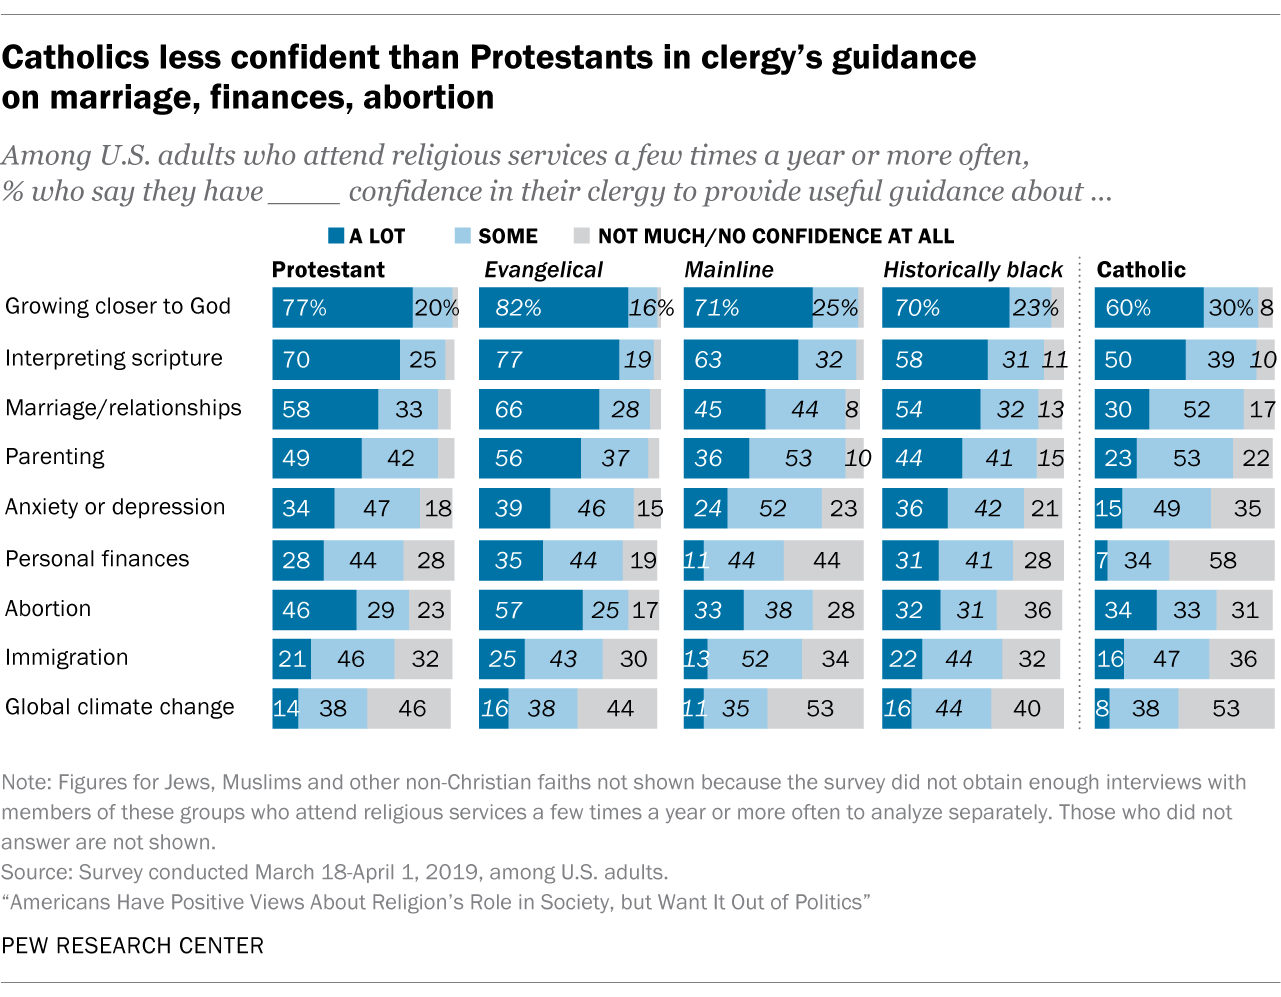 Catholics less confident than Protestants in clergy's guidance on marriage, finances, abortion